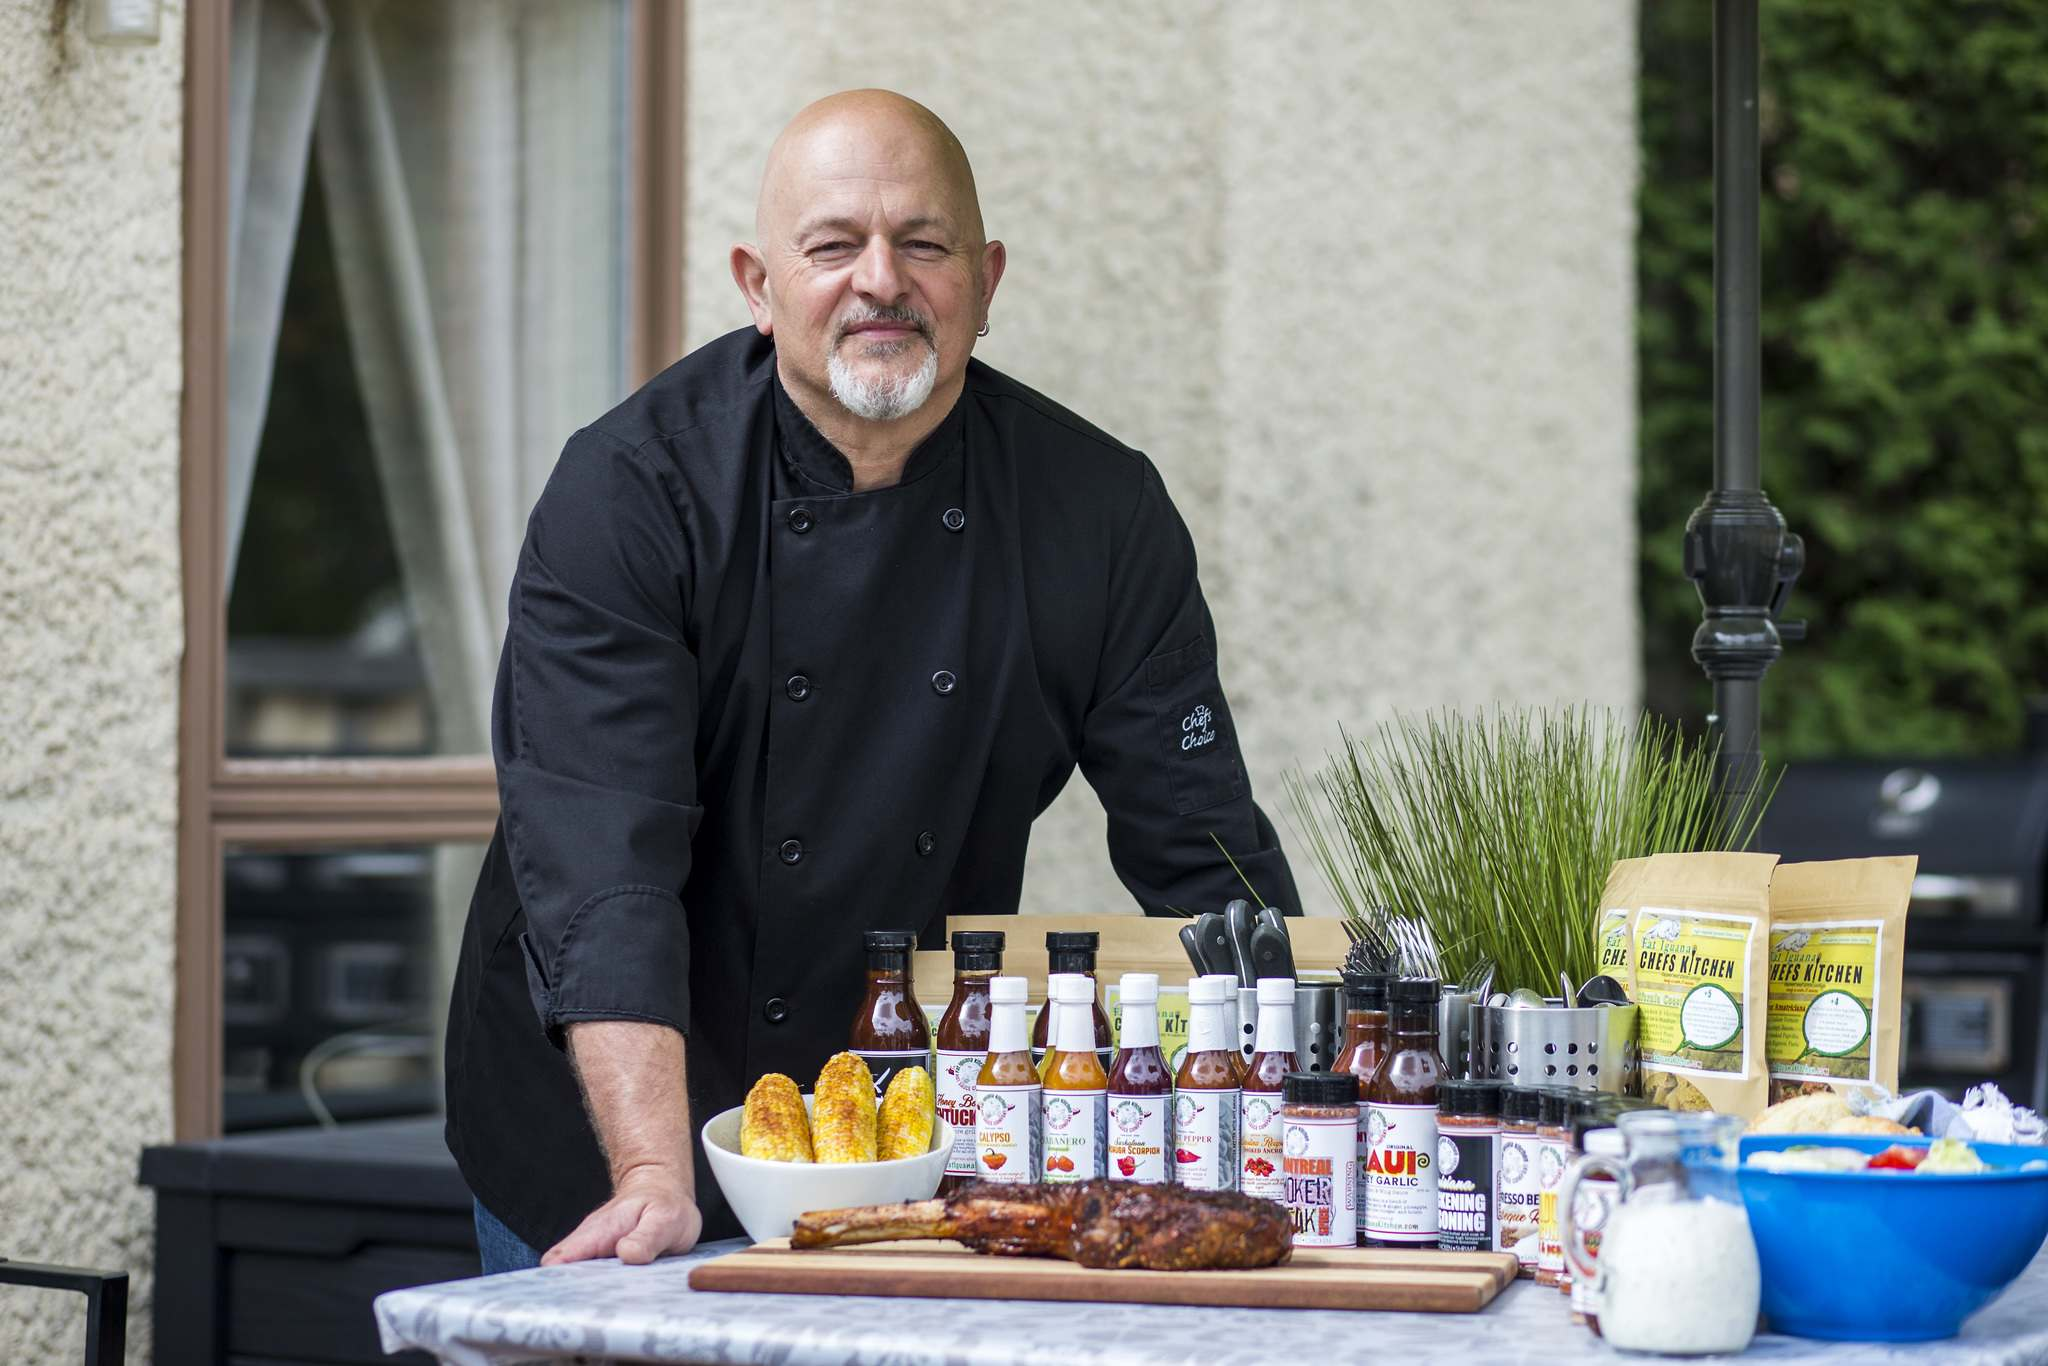 Steve Hunt-Lesage, who last toiled in a restaurant in 2005, is putting his real estate career on hold for the foreseeable future to devote his full attention to Fat Iguana Chef's Kitchen